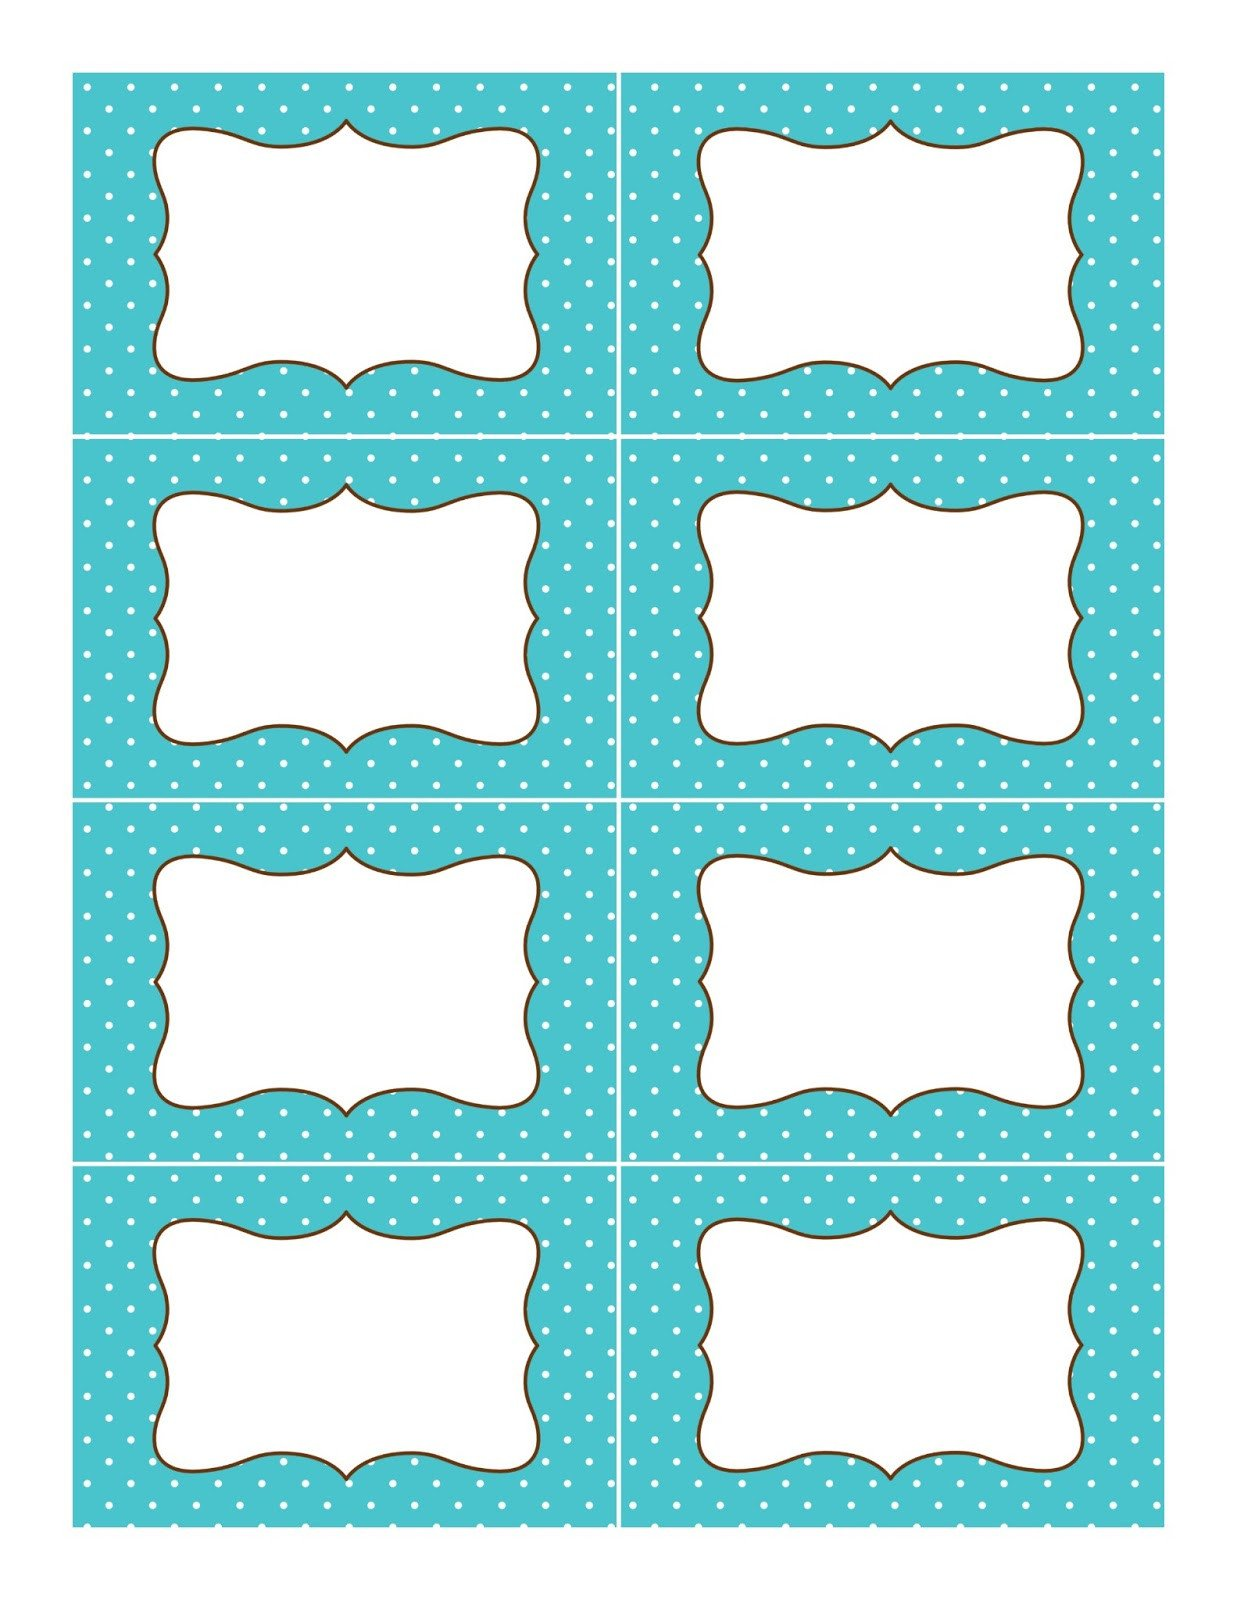 Free Printable Label Templates 1000 Ideas About Polka Dot Labels On Pinterest